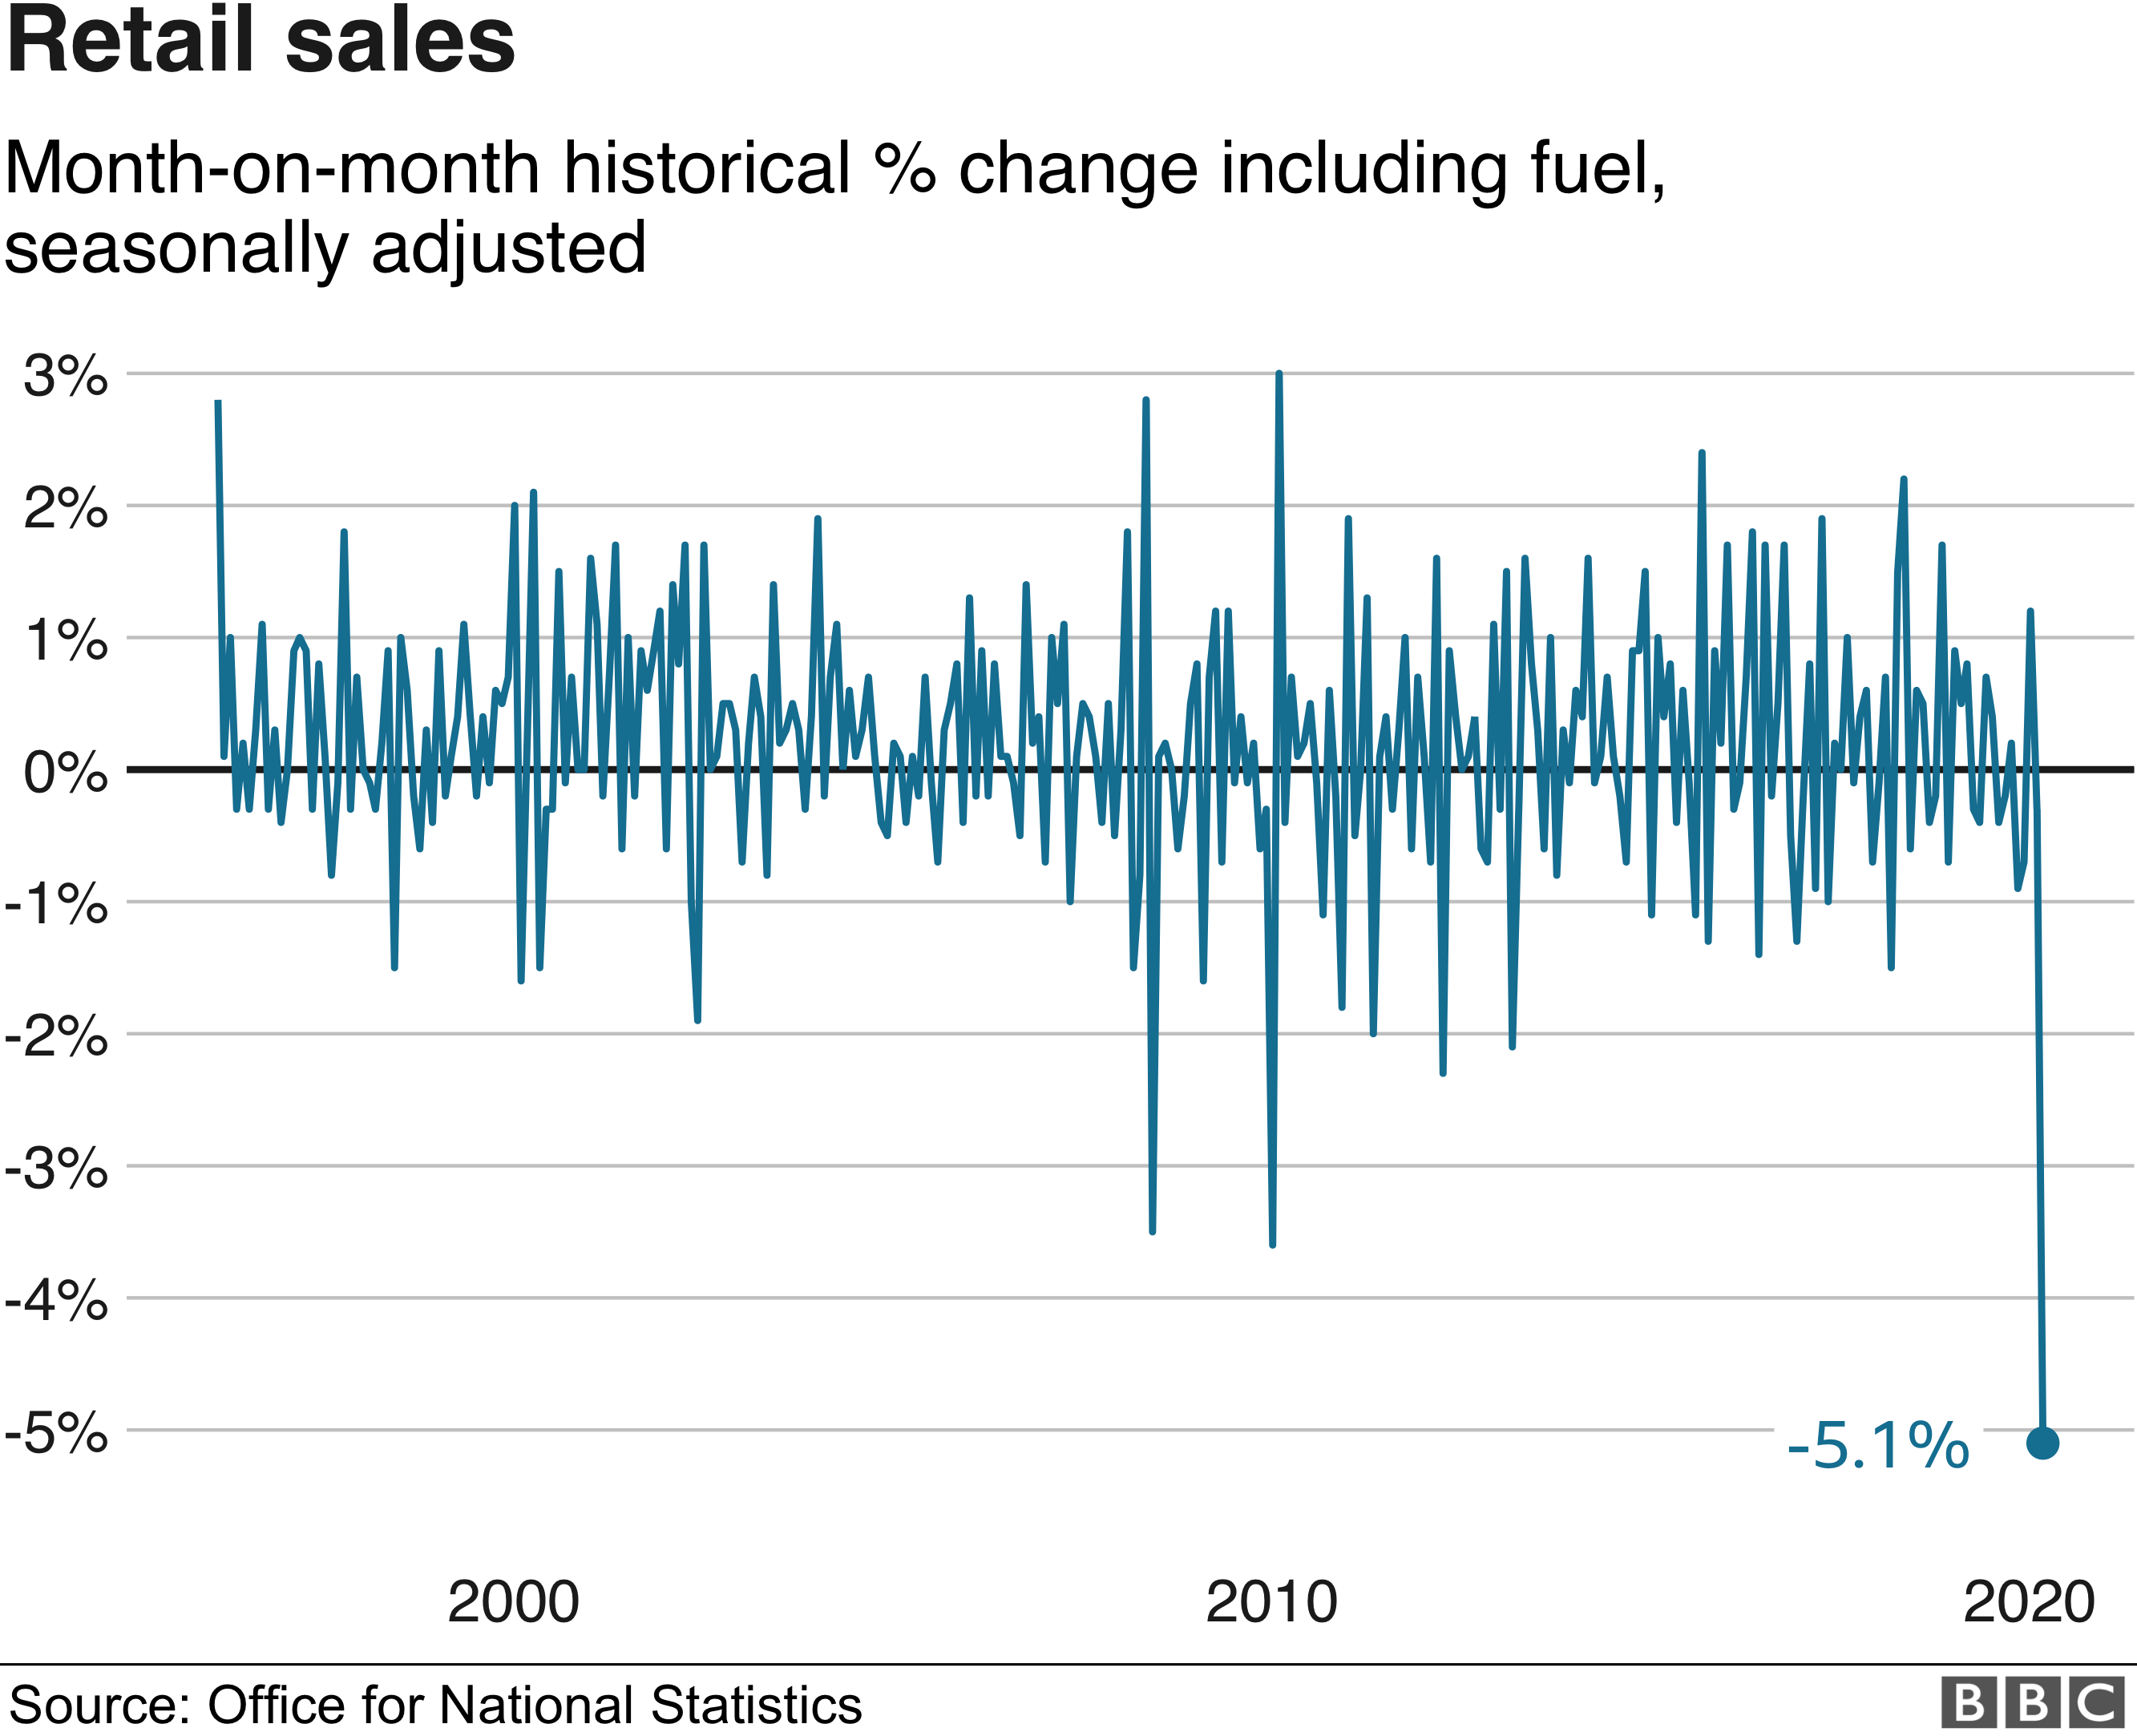 Image of graphically shown retail sales